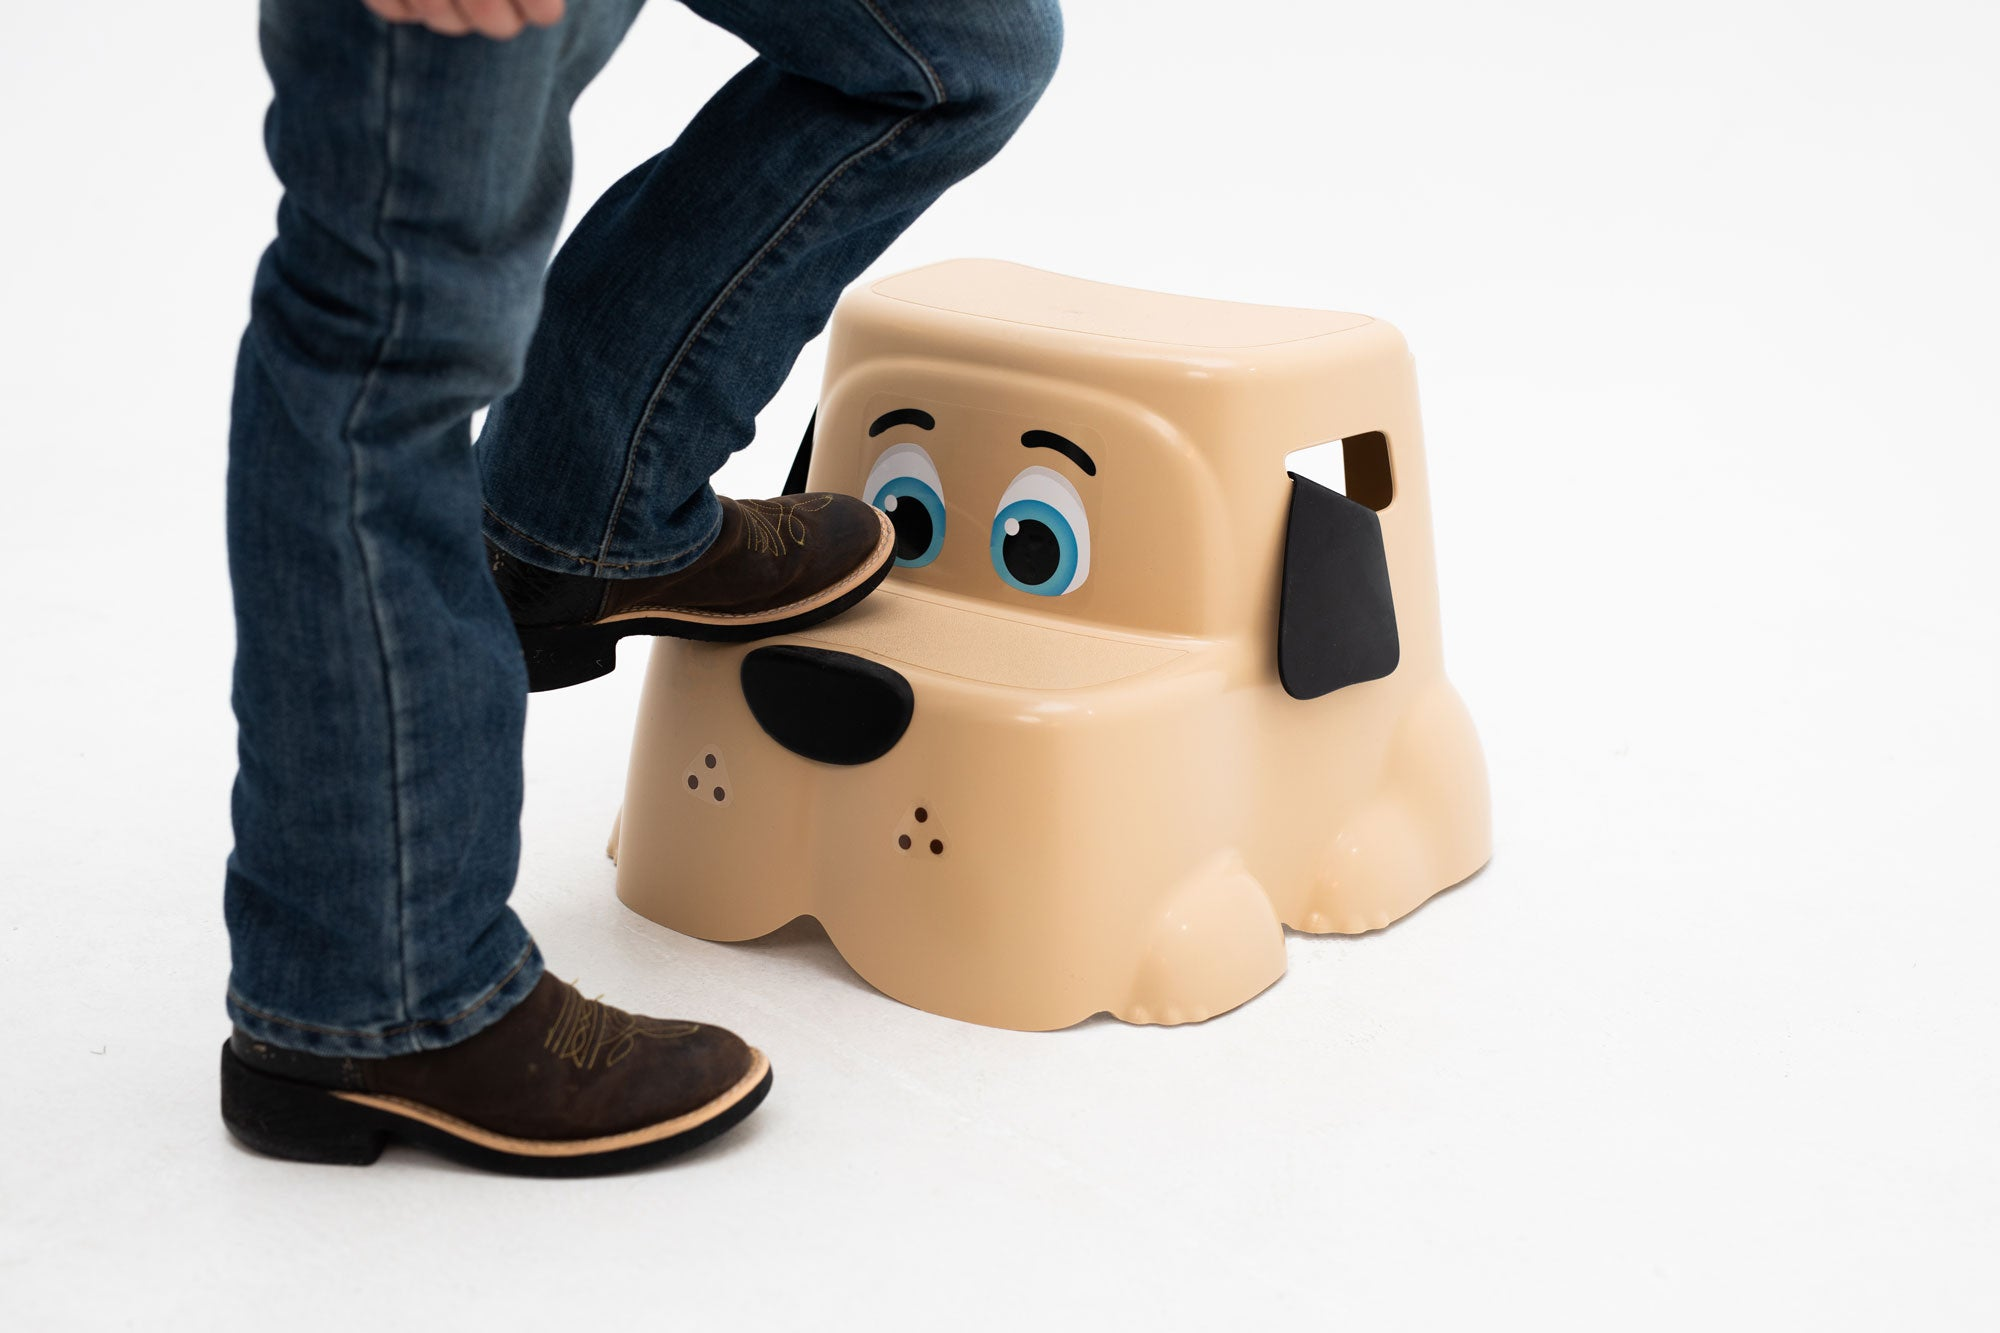 Potty Pet's dog can be used as a step stool